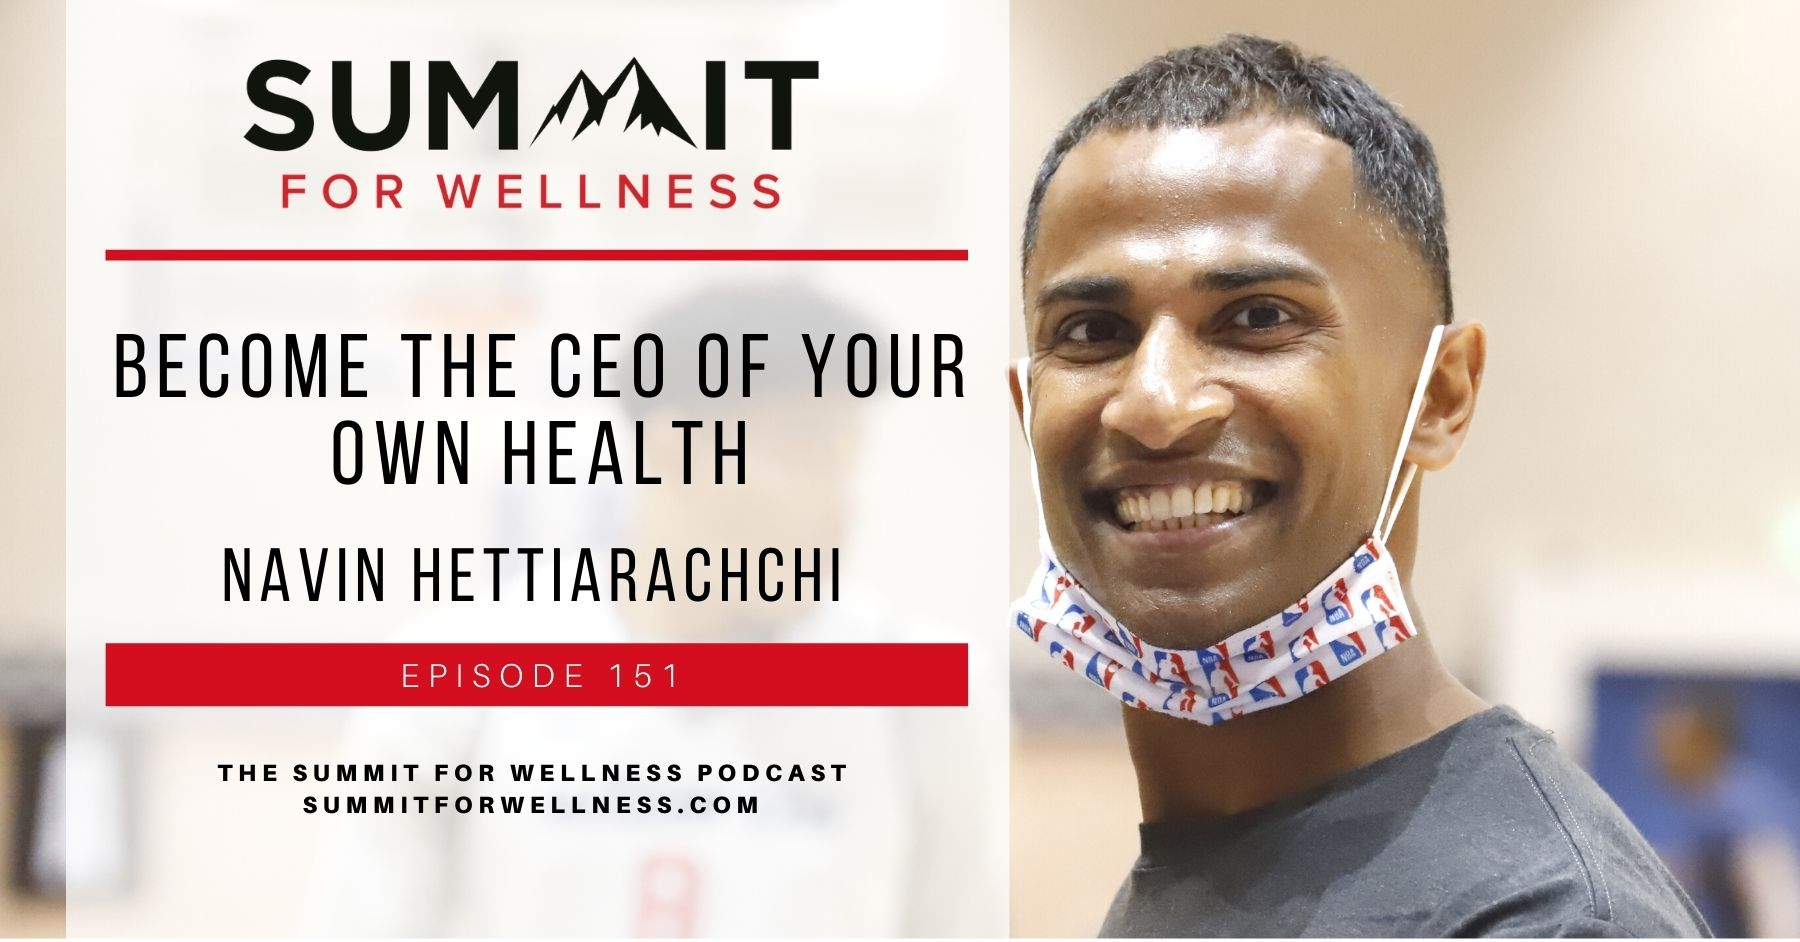 Navin Hettiarachchi teaches us how to become the CEO of our own health